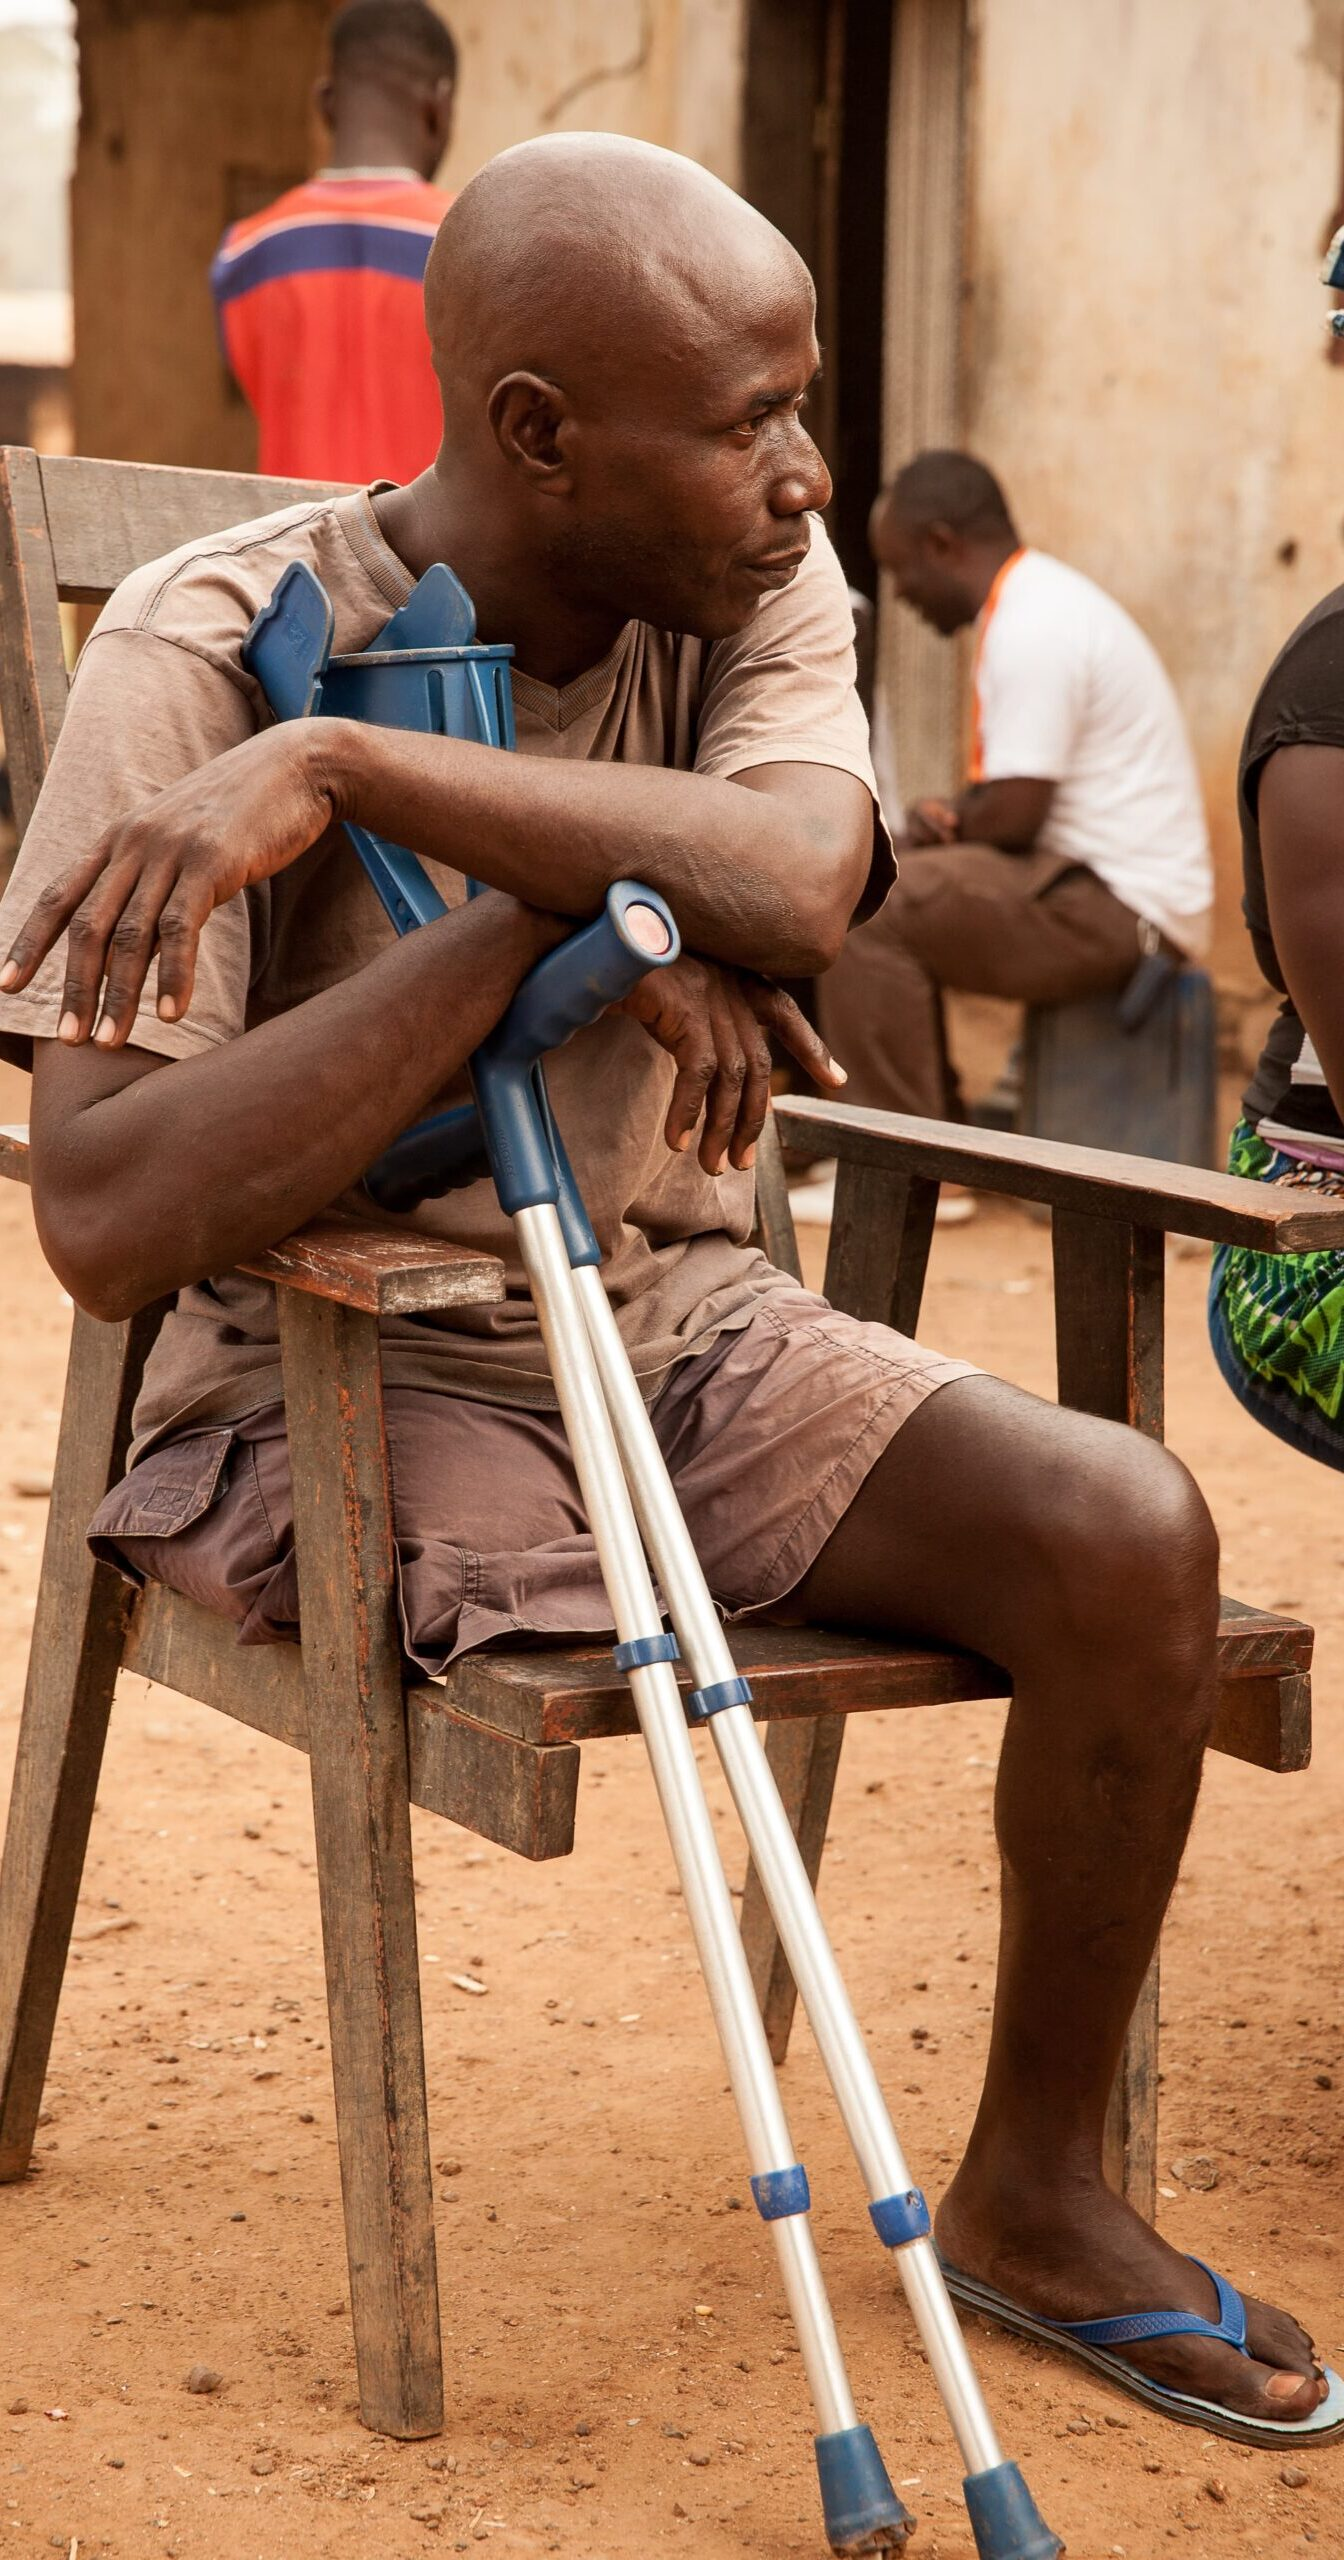 Man with a physical disability in Cameroon